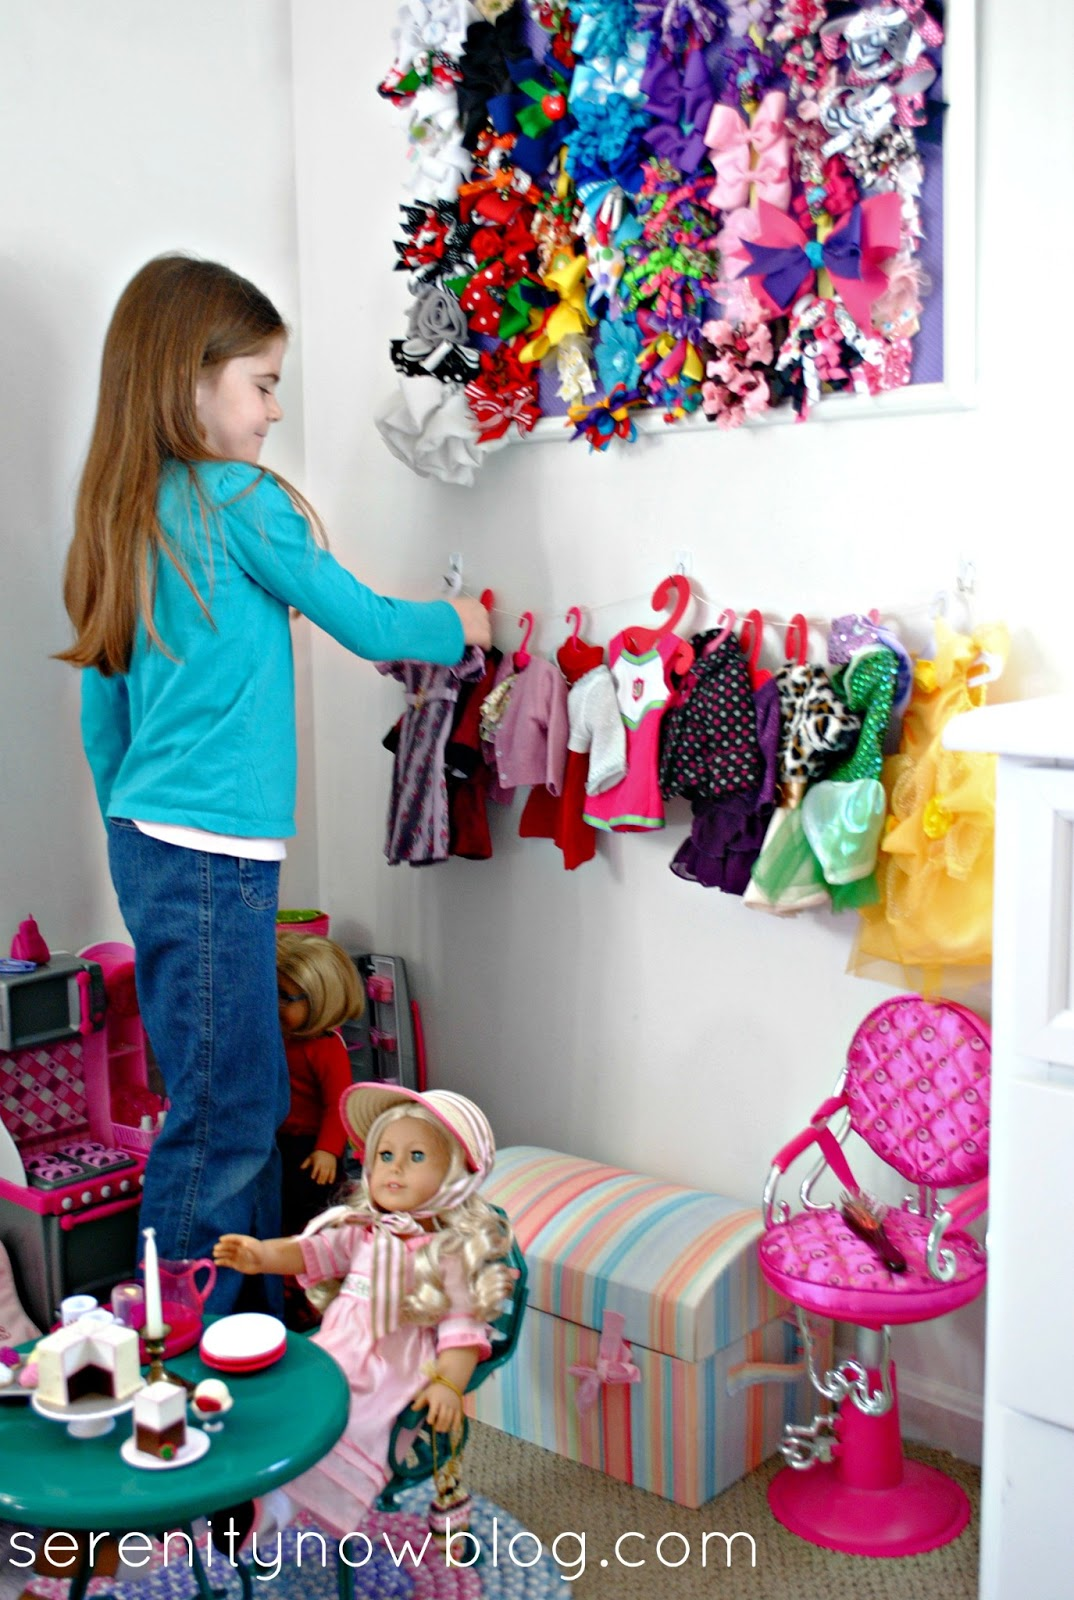 Dolls store clothing